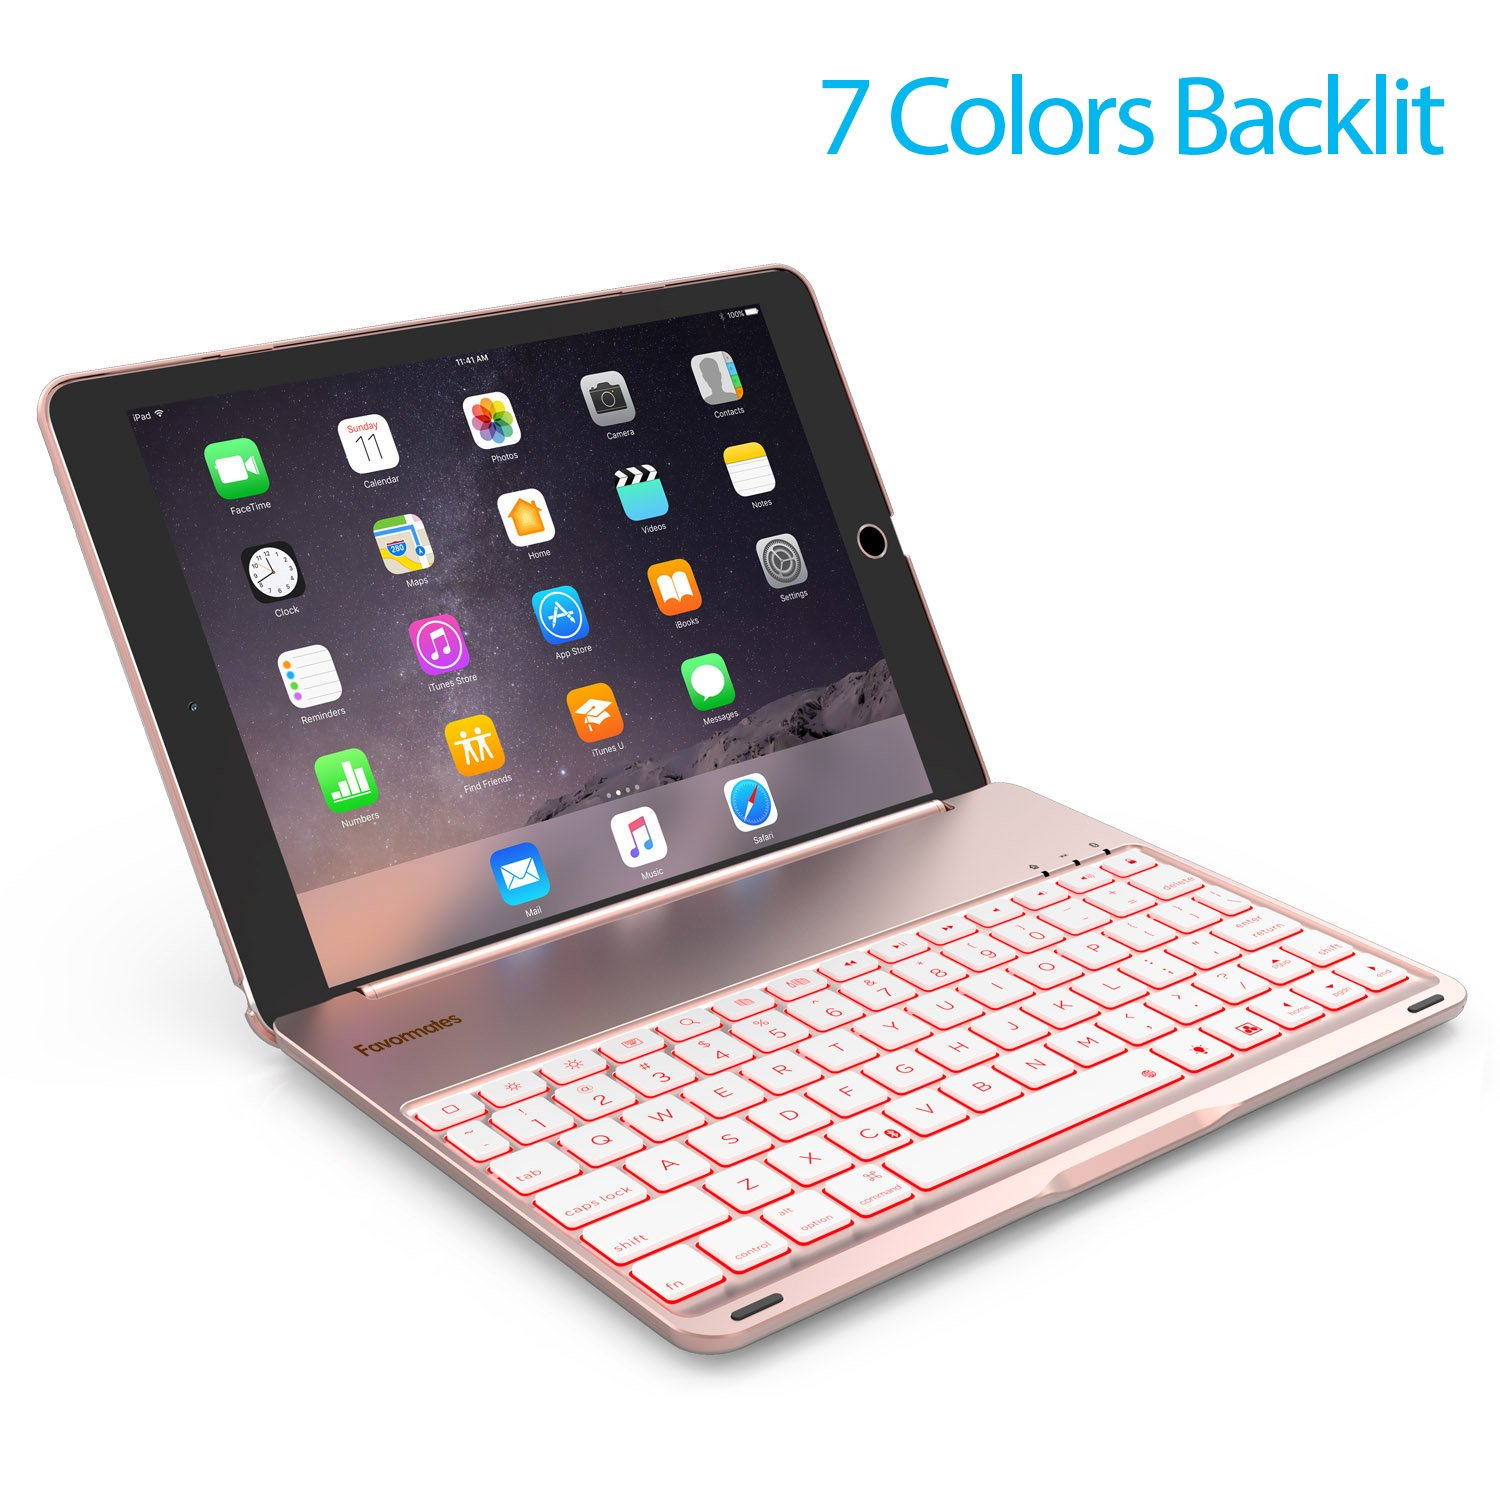 Keyboard Case Compatible with iPad PRO 9.7 Inch/iPad Air 2-LED 7 Colors Backlit Bluetooth Keyboard with 130° Folio Hard Back Cover, Aluminum Alloy- (for iPad Model: A1566/A1567/A1673/A1674)